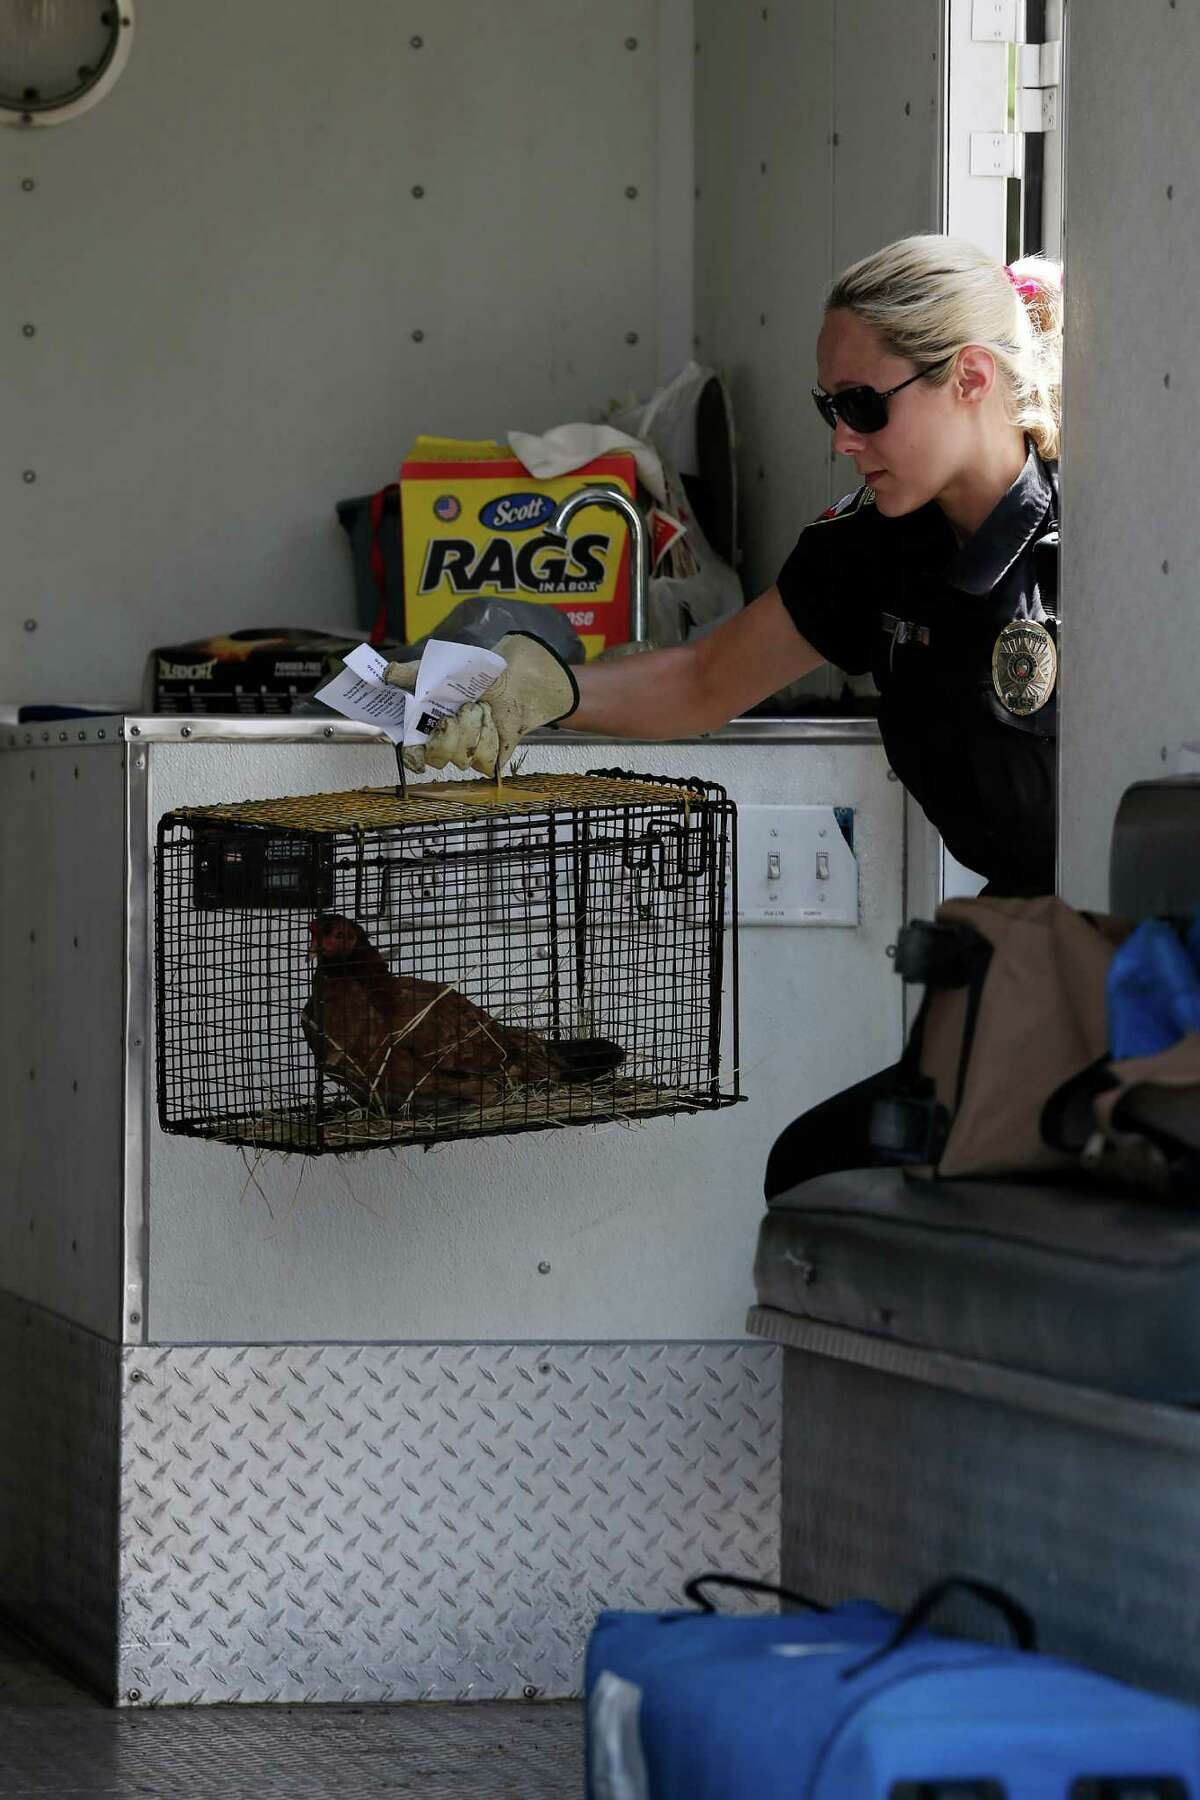 Animal Care Services officers confiscate 80 roosters and chickens from a house at the 100 block of Inez Avenue, Thursday, June 2, 2016. Many of the birds were malnourished and held in substandard conditions. According to ACS Field Operations Supervisor Audra Houghton, the owner voluntarily gave up the animals and could face misdemeanor animal cruelty charges after an investigation.